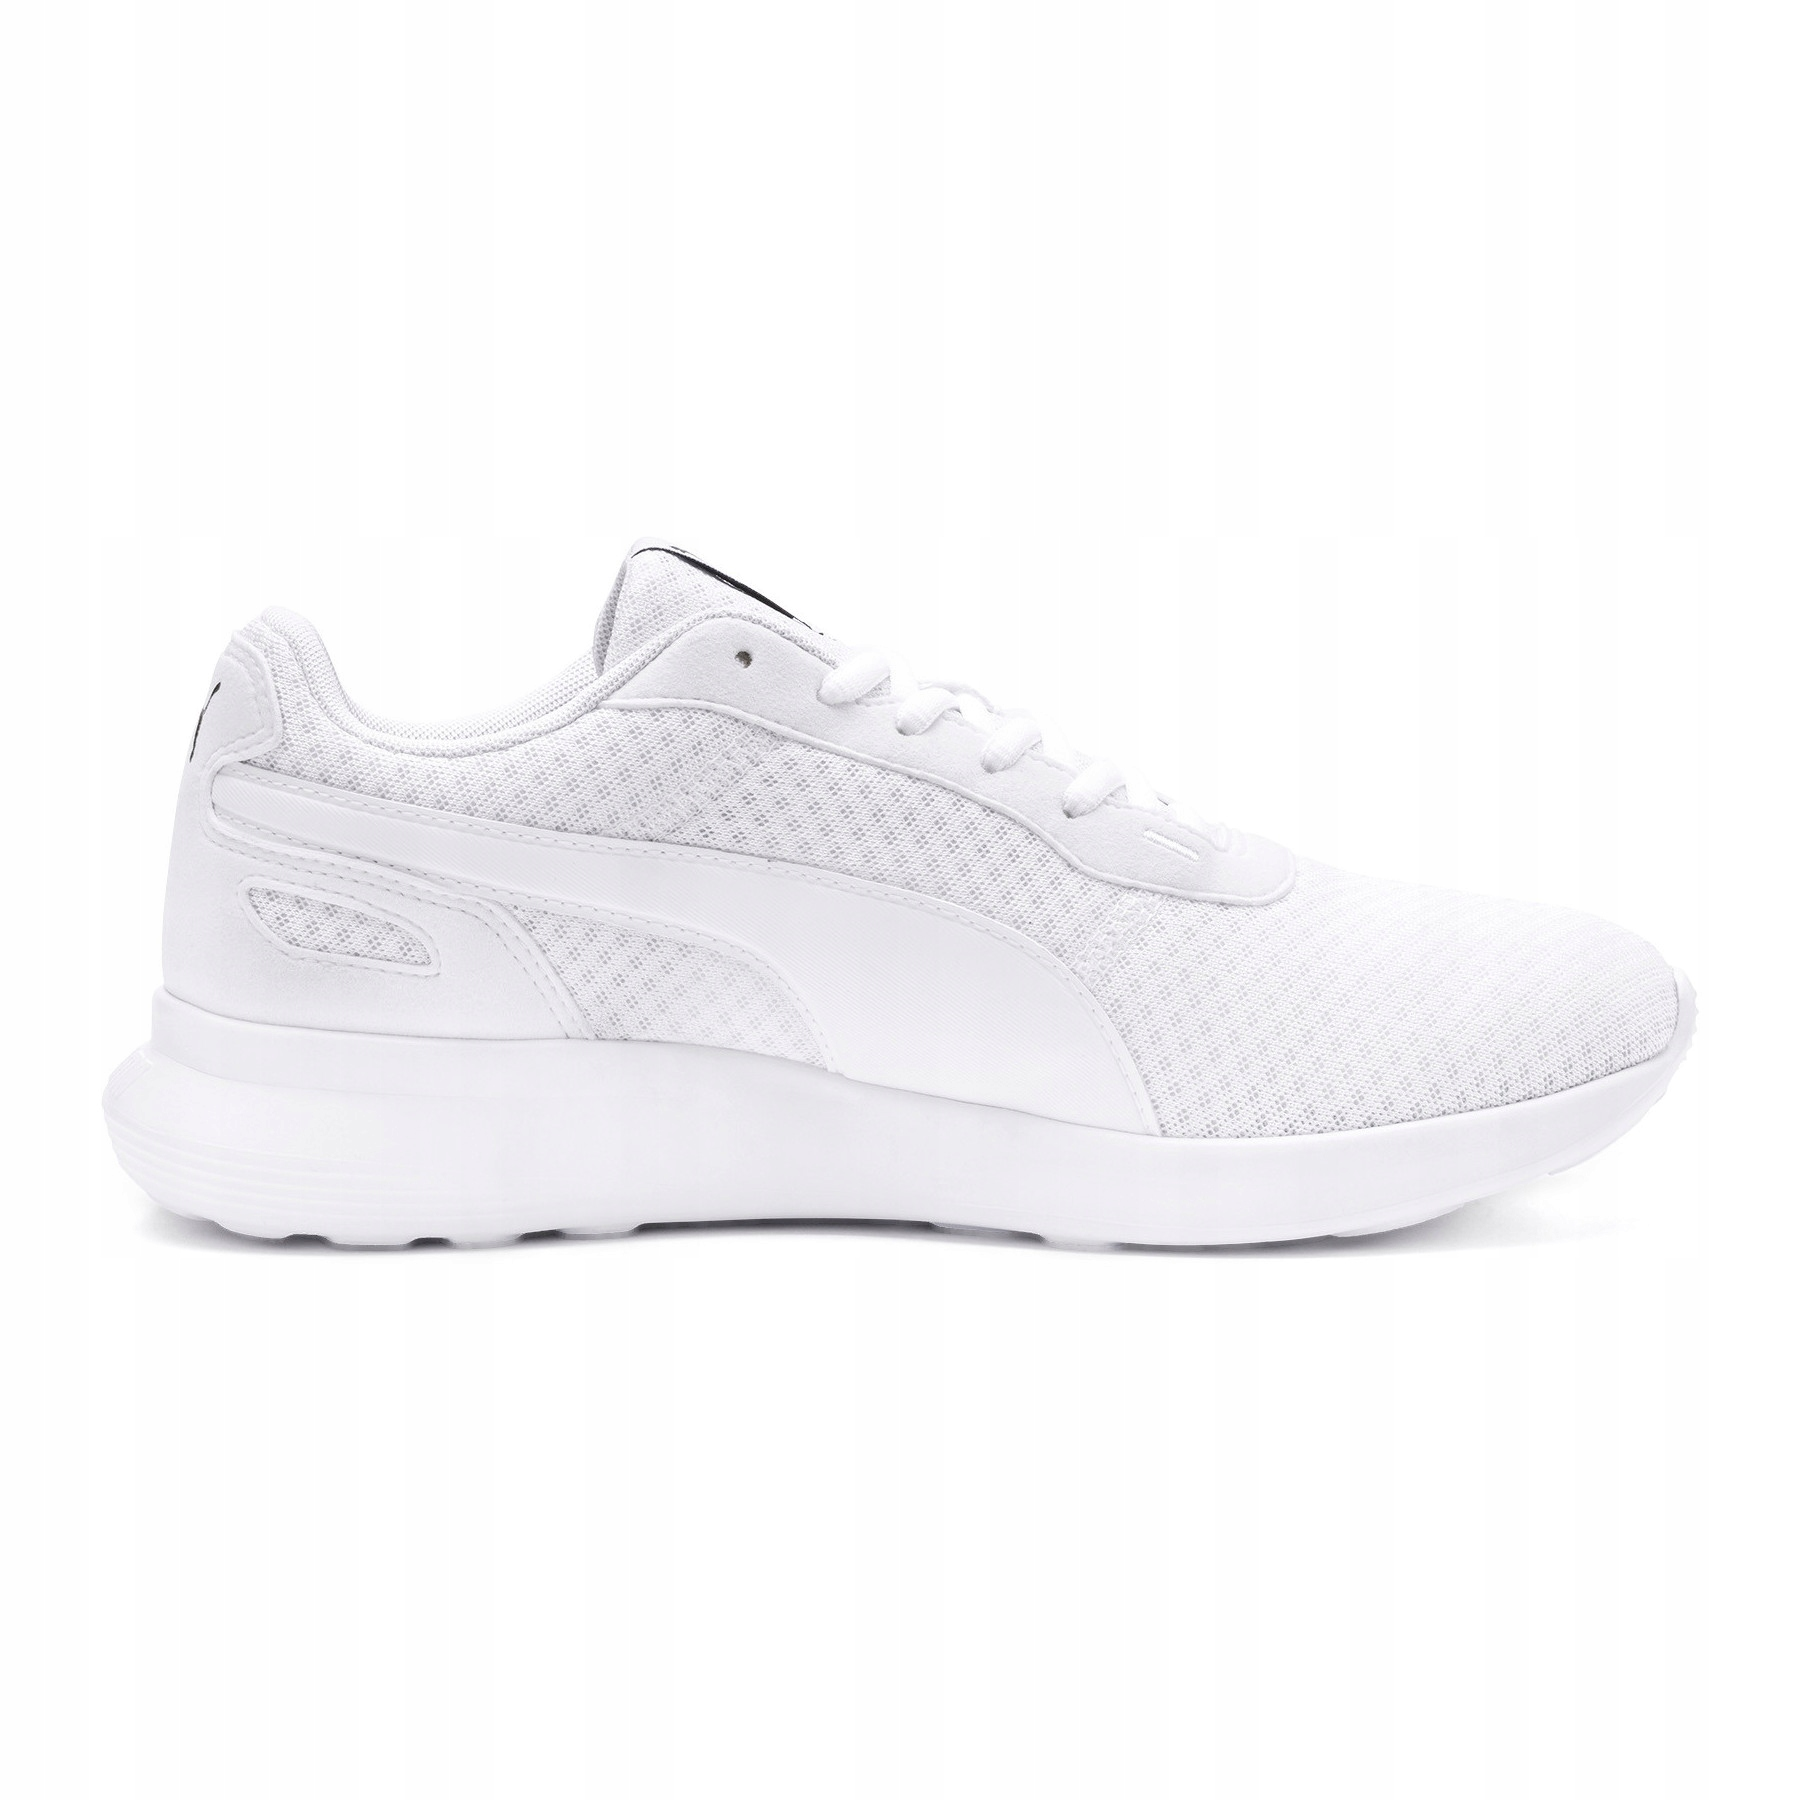 BUTY PUMA ST ACTIVATE 36912202 r 44.5